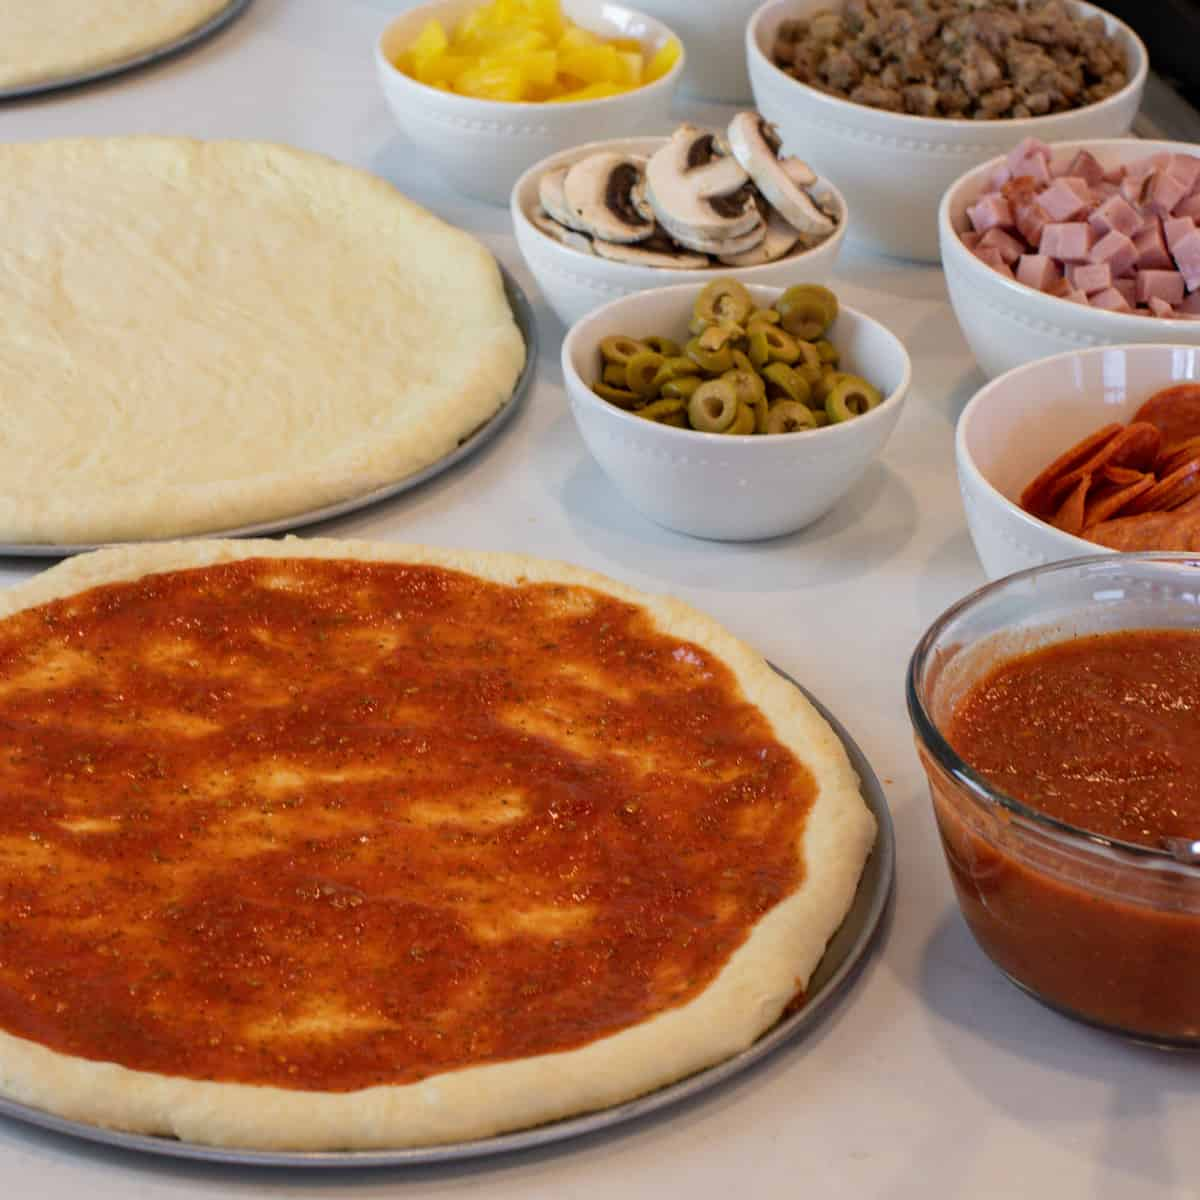 Pizza crust with fresh sauce spread all over.